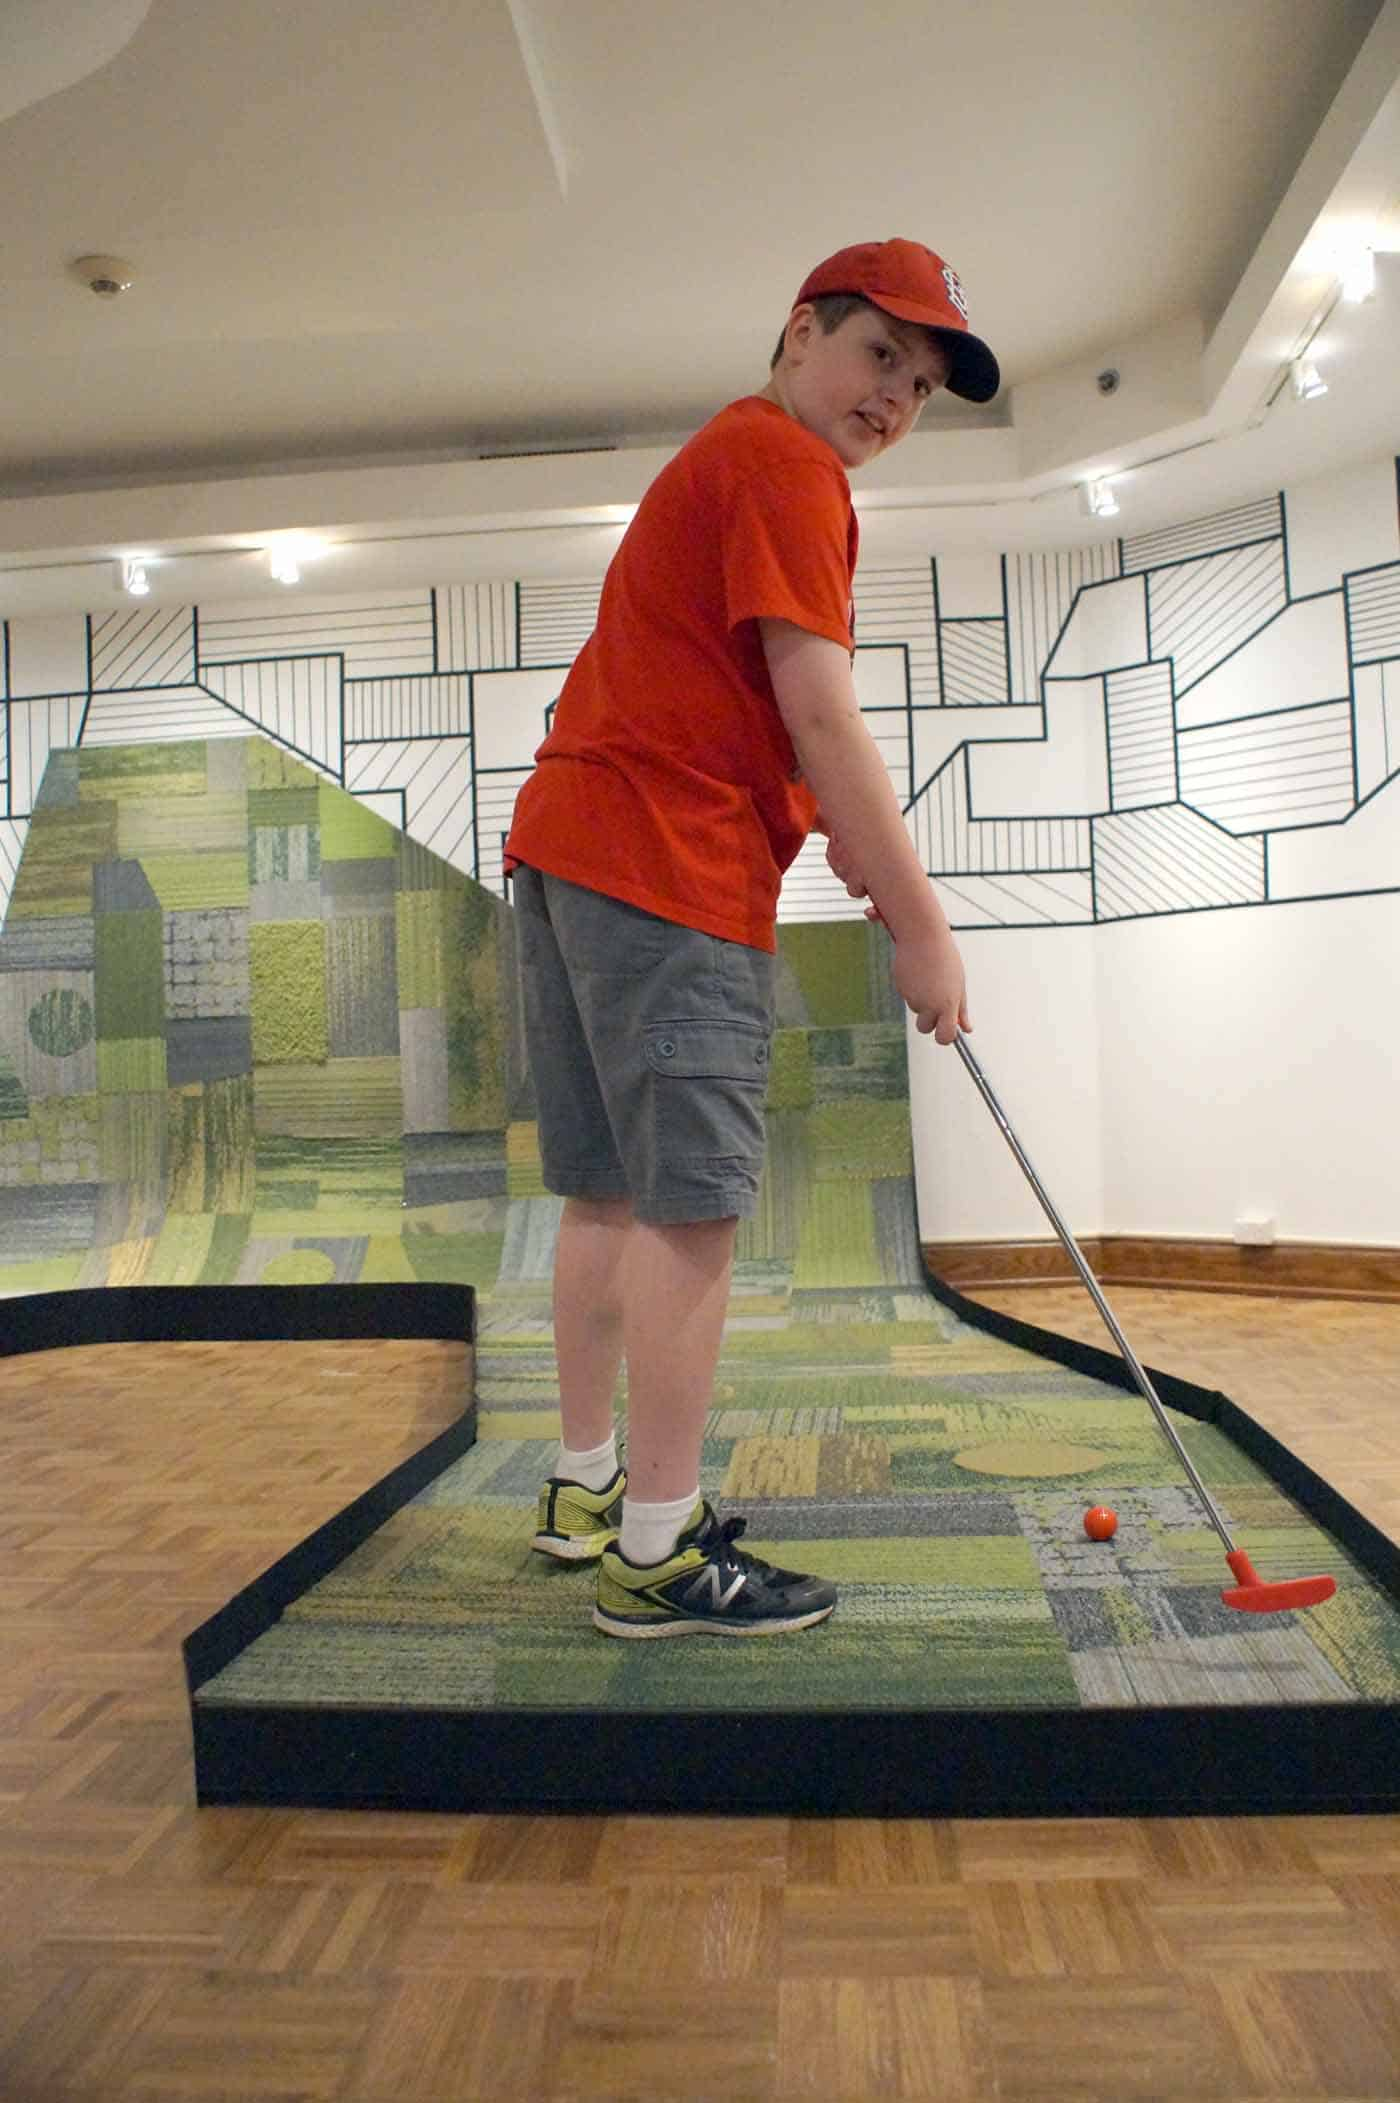 Indoor golf at an art museum. Boy in red shirt plays a mini golf hole made of green carpet squares running up the side of a wall.